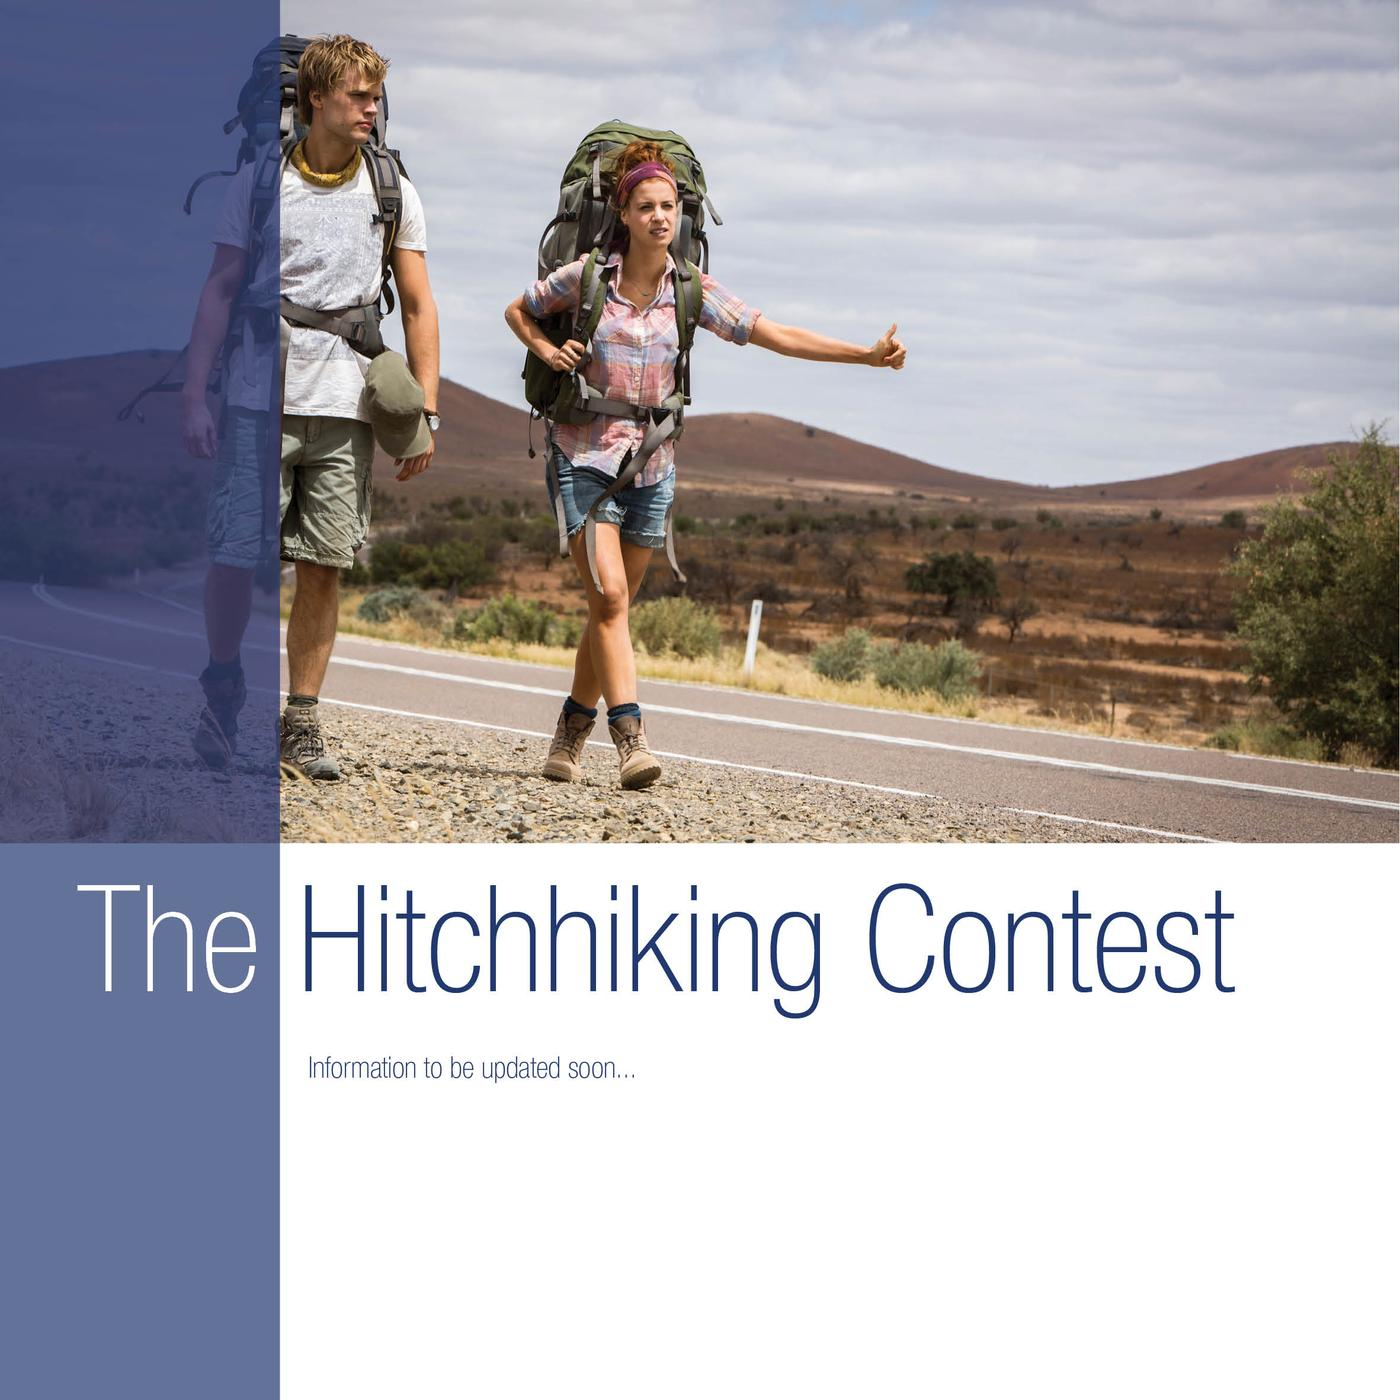 Hitchhiking_contest.jpg